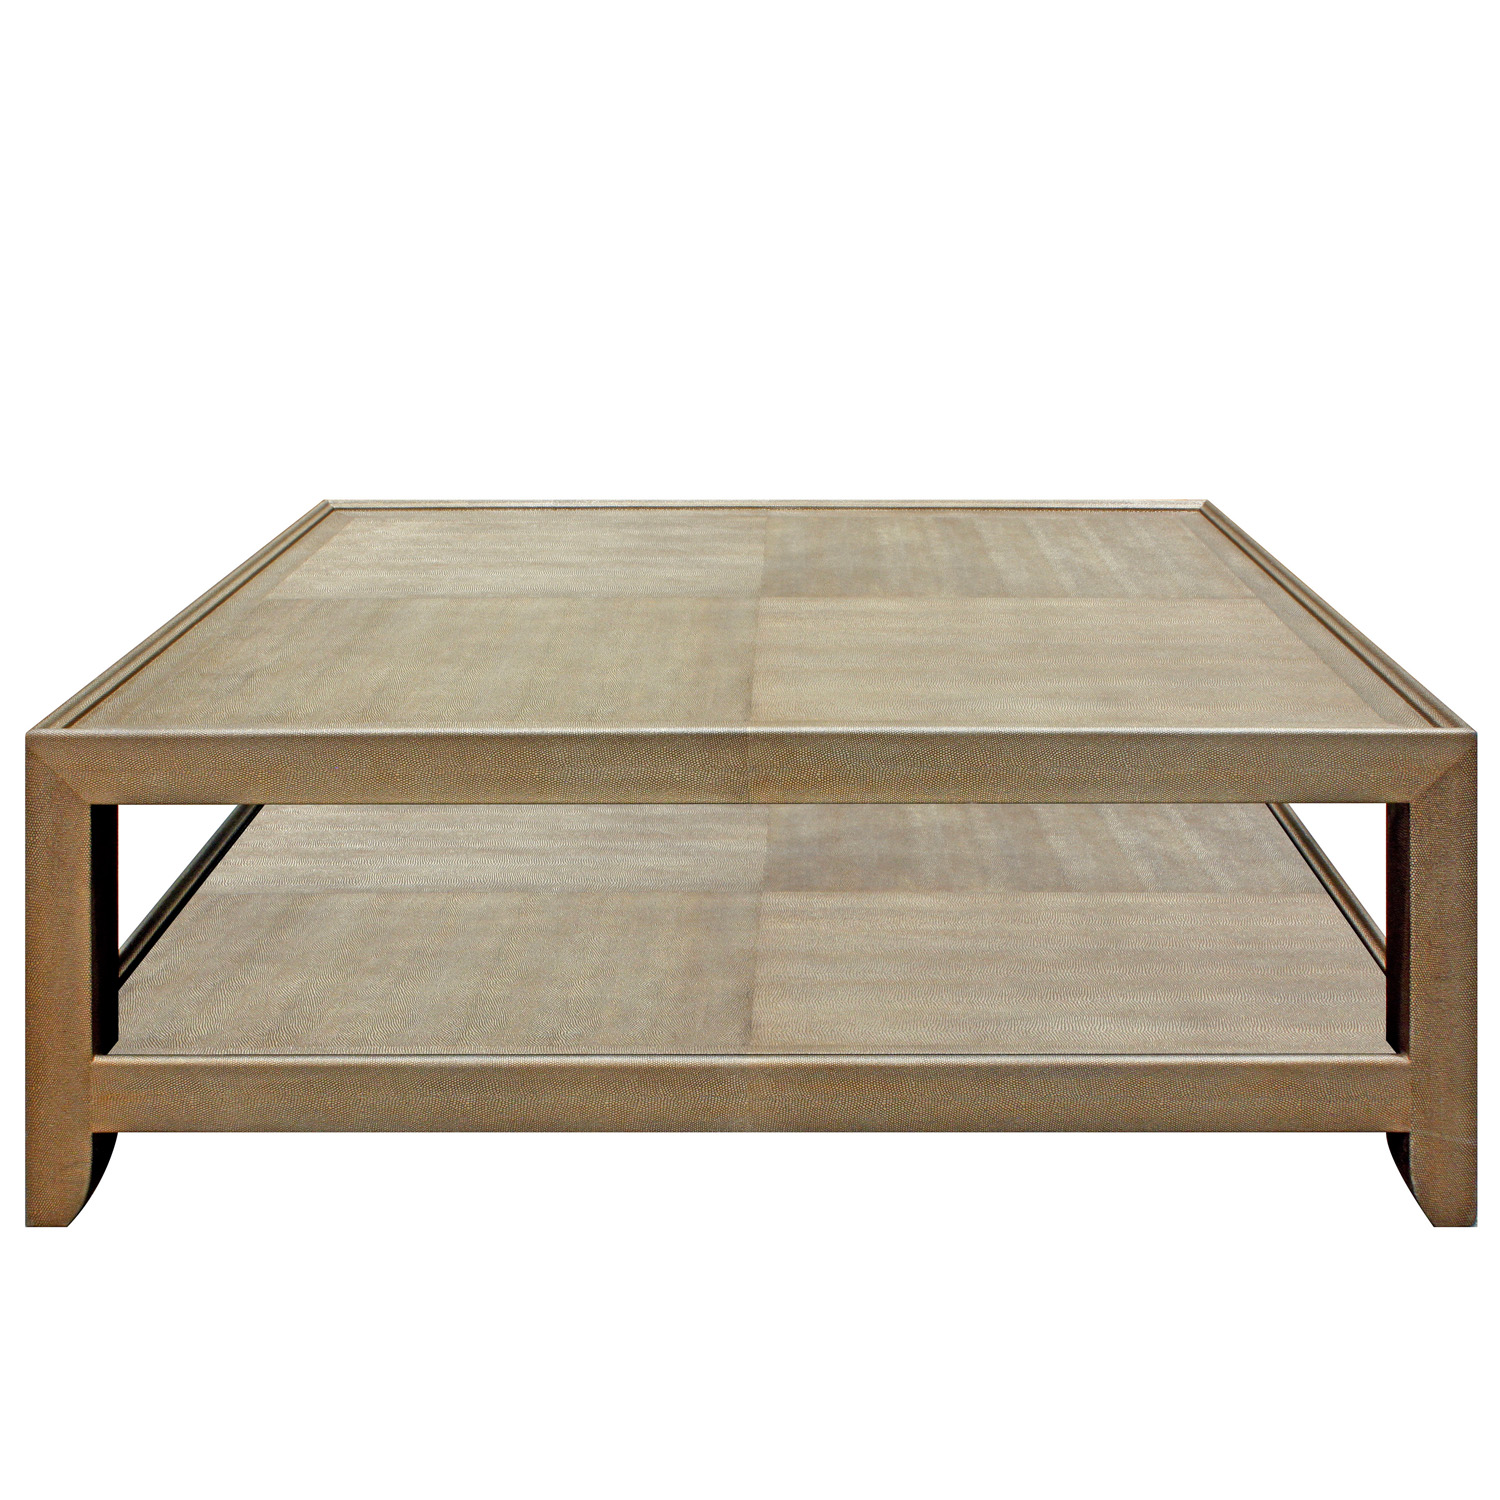 Windsor 120 coffee table forssberg2 hires main.jpg